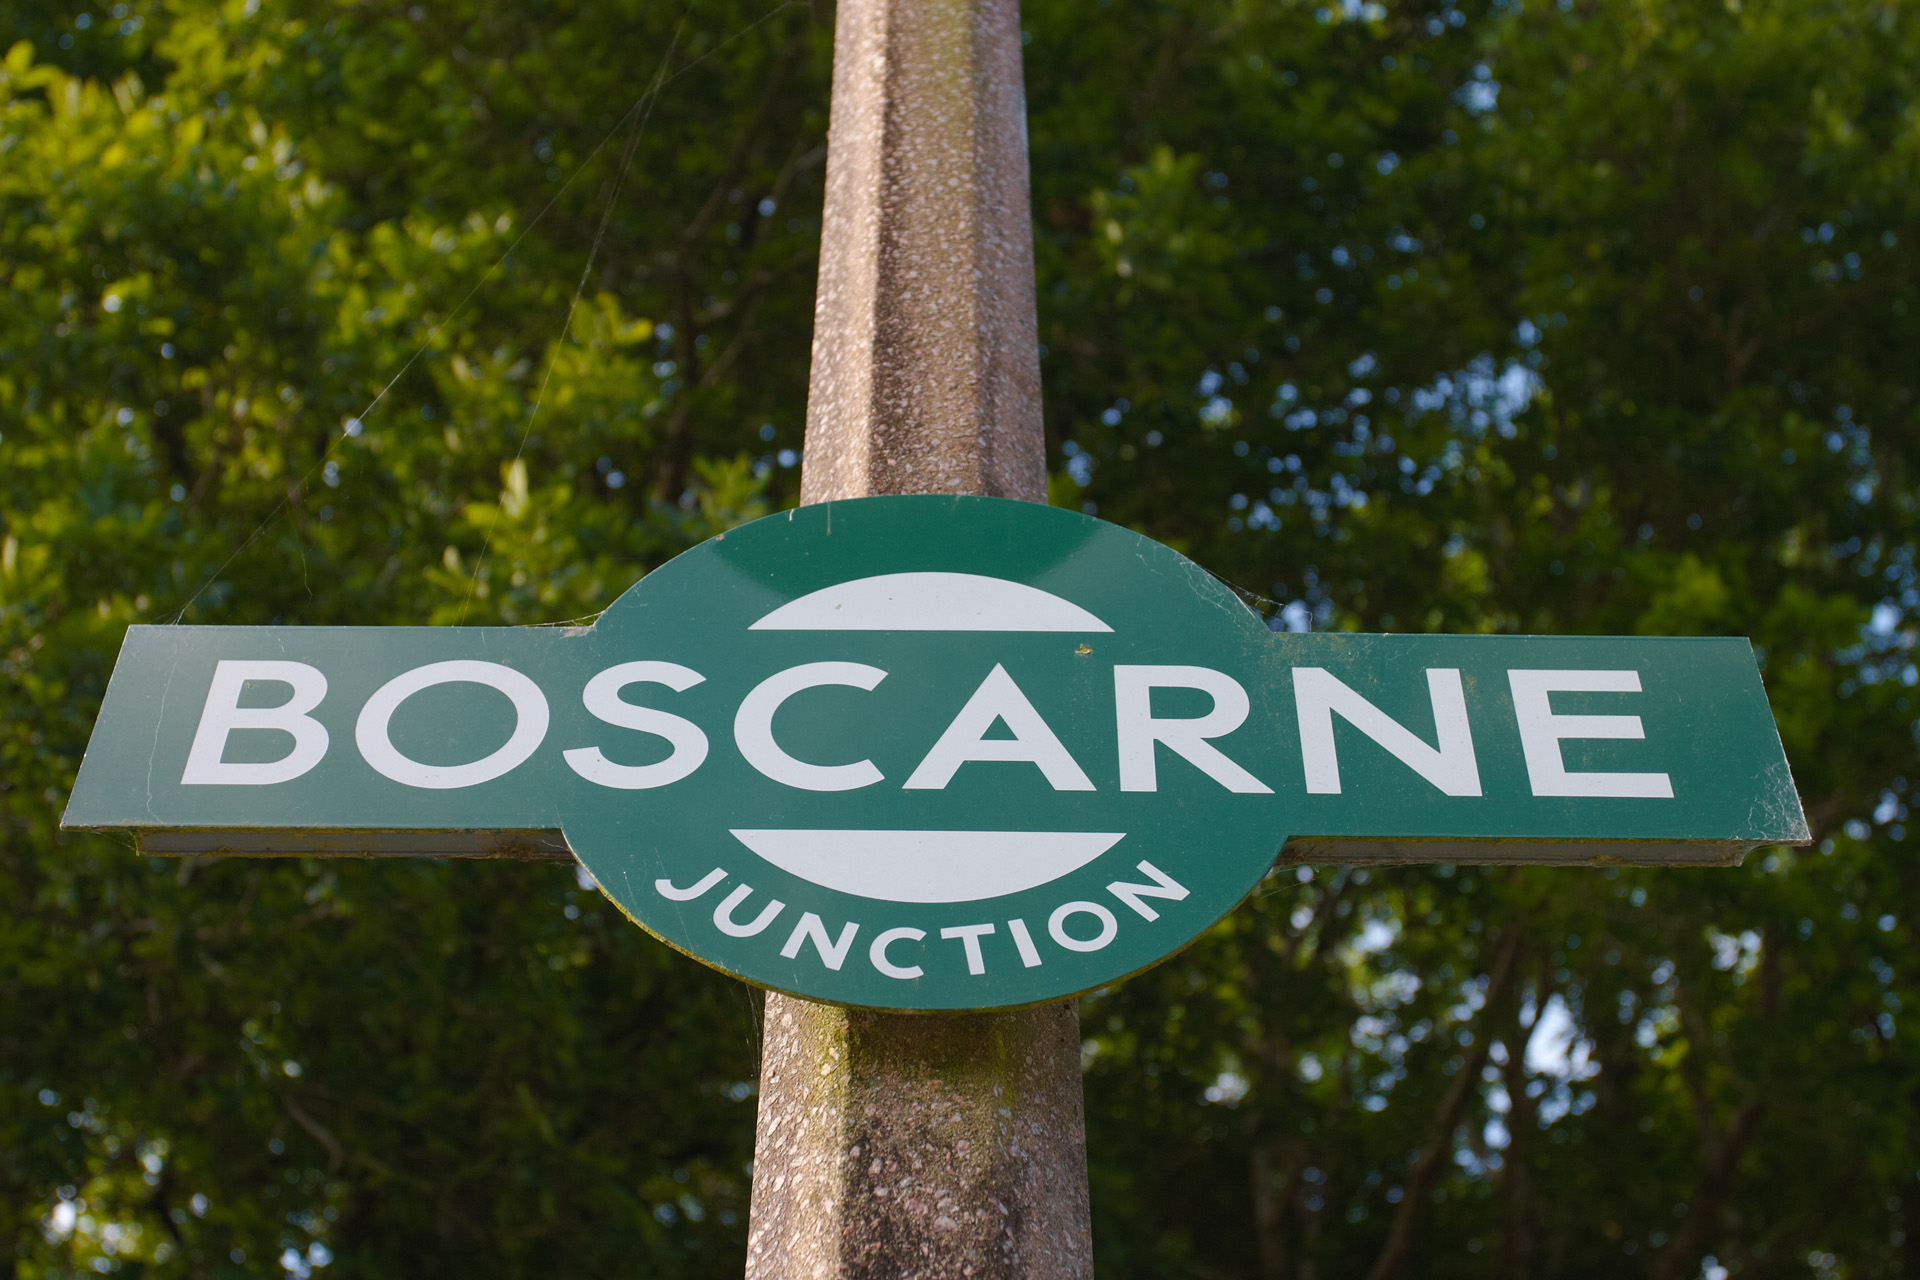 Boscarne Junction railway station sign